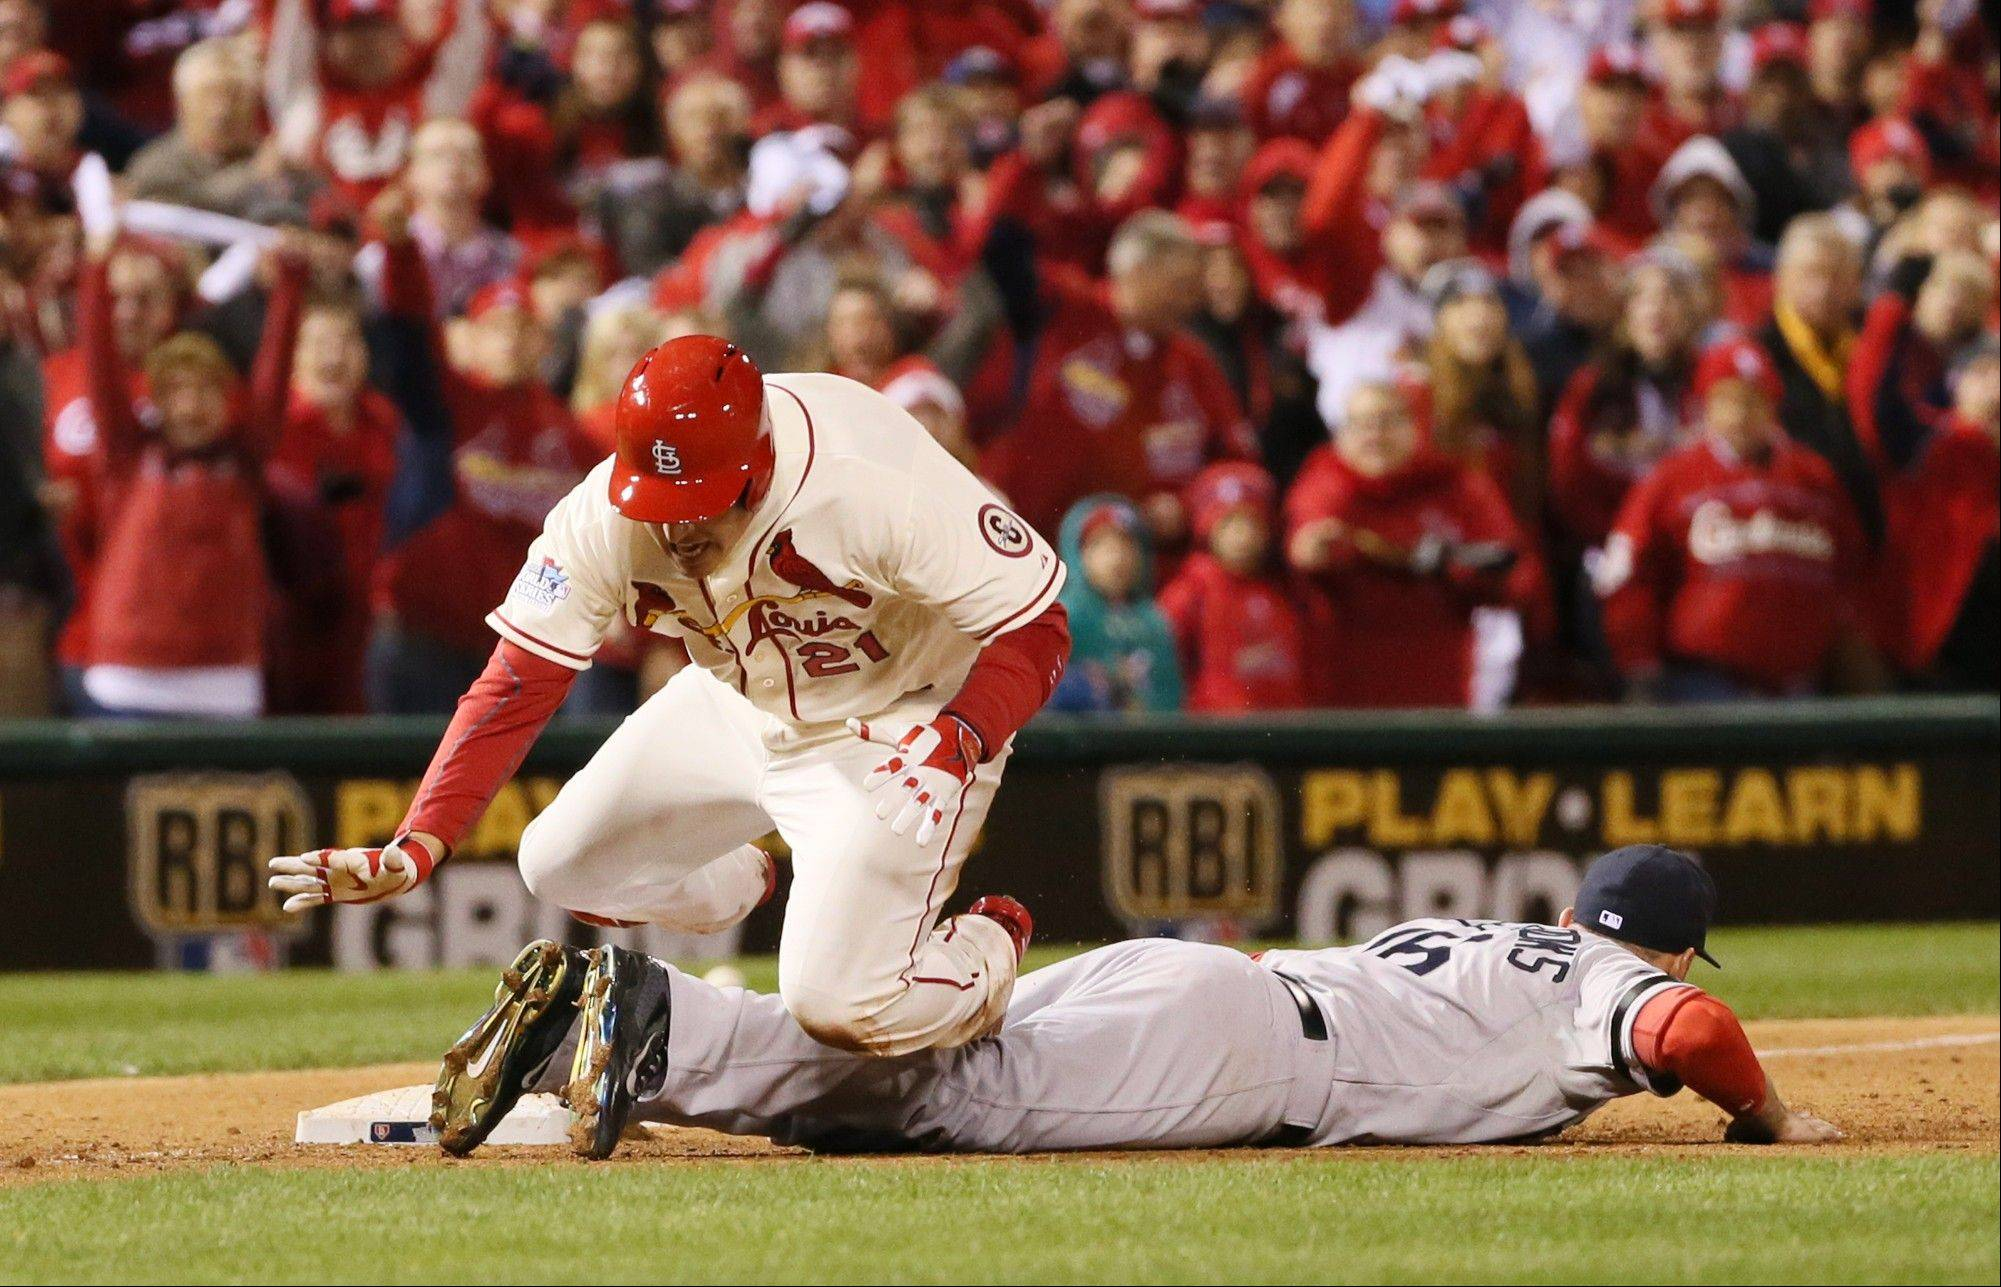 St. Louis Cardinals' Allen Craig trips over Boston Red Sox third baseman Will Middlebrooks as he tries to score from third in the ninth inning during Game 3 of the World Series. Craig was awarded home due to interference on the play.